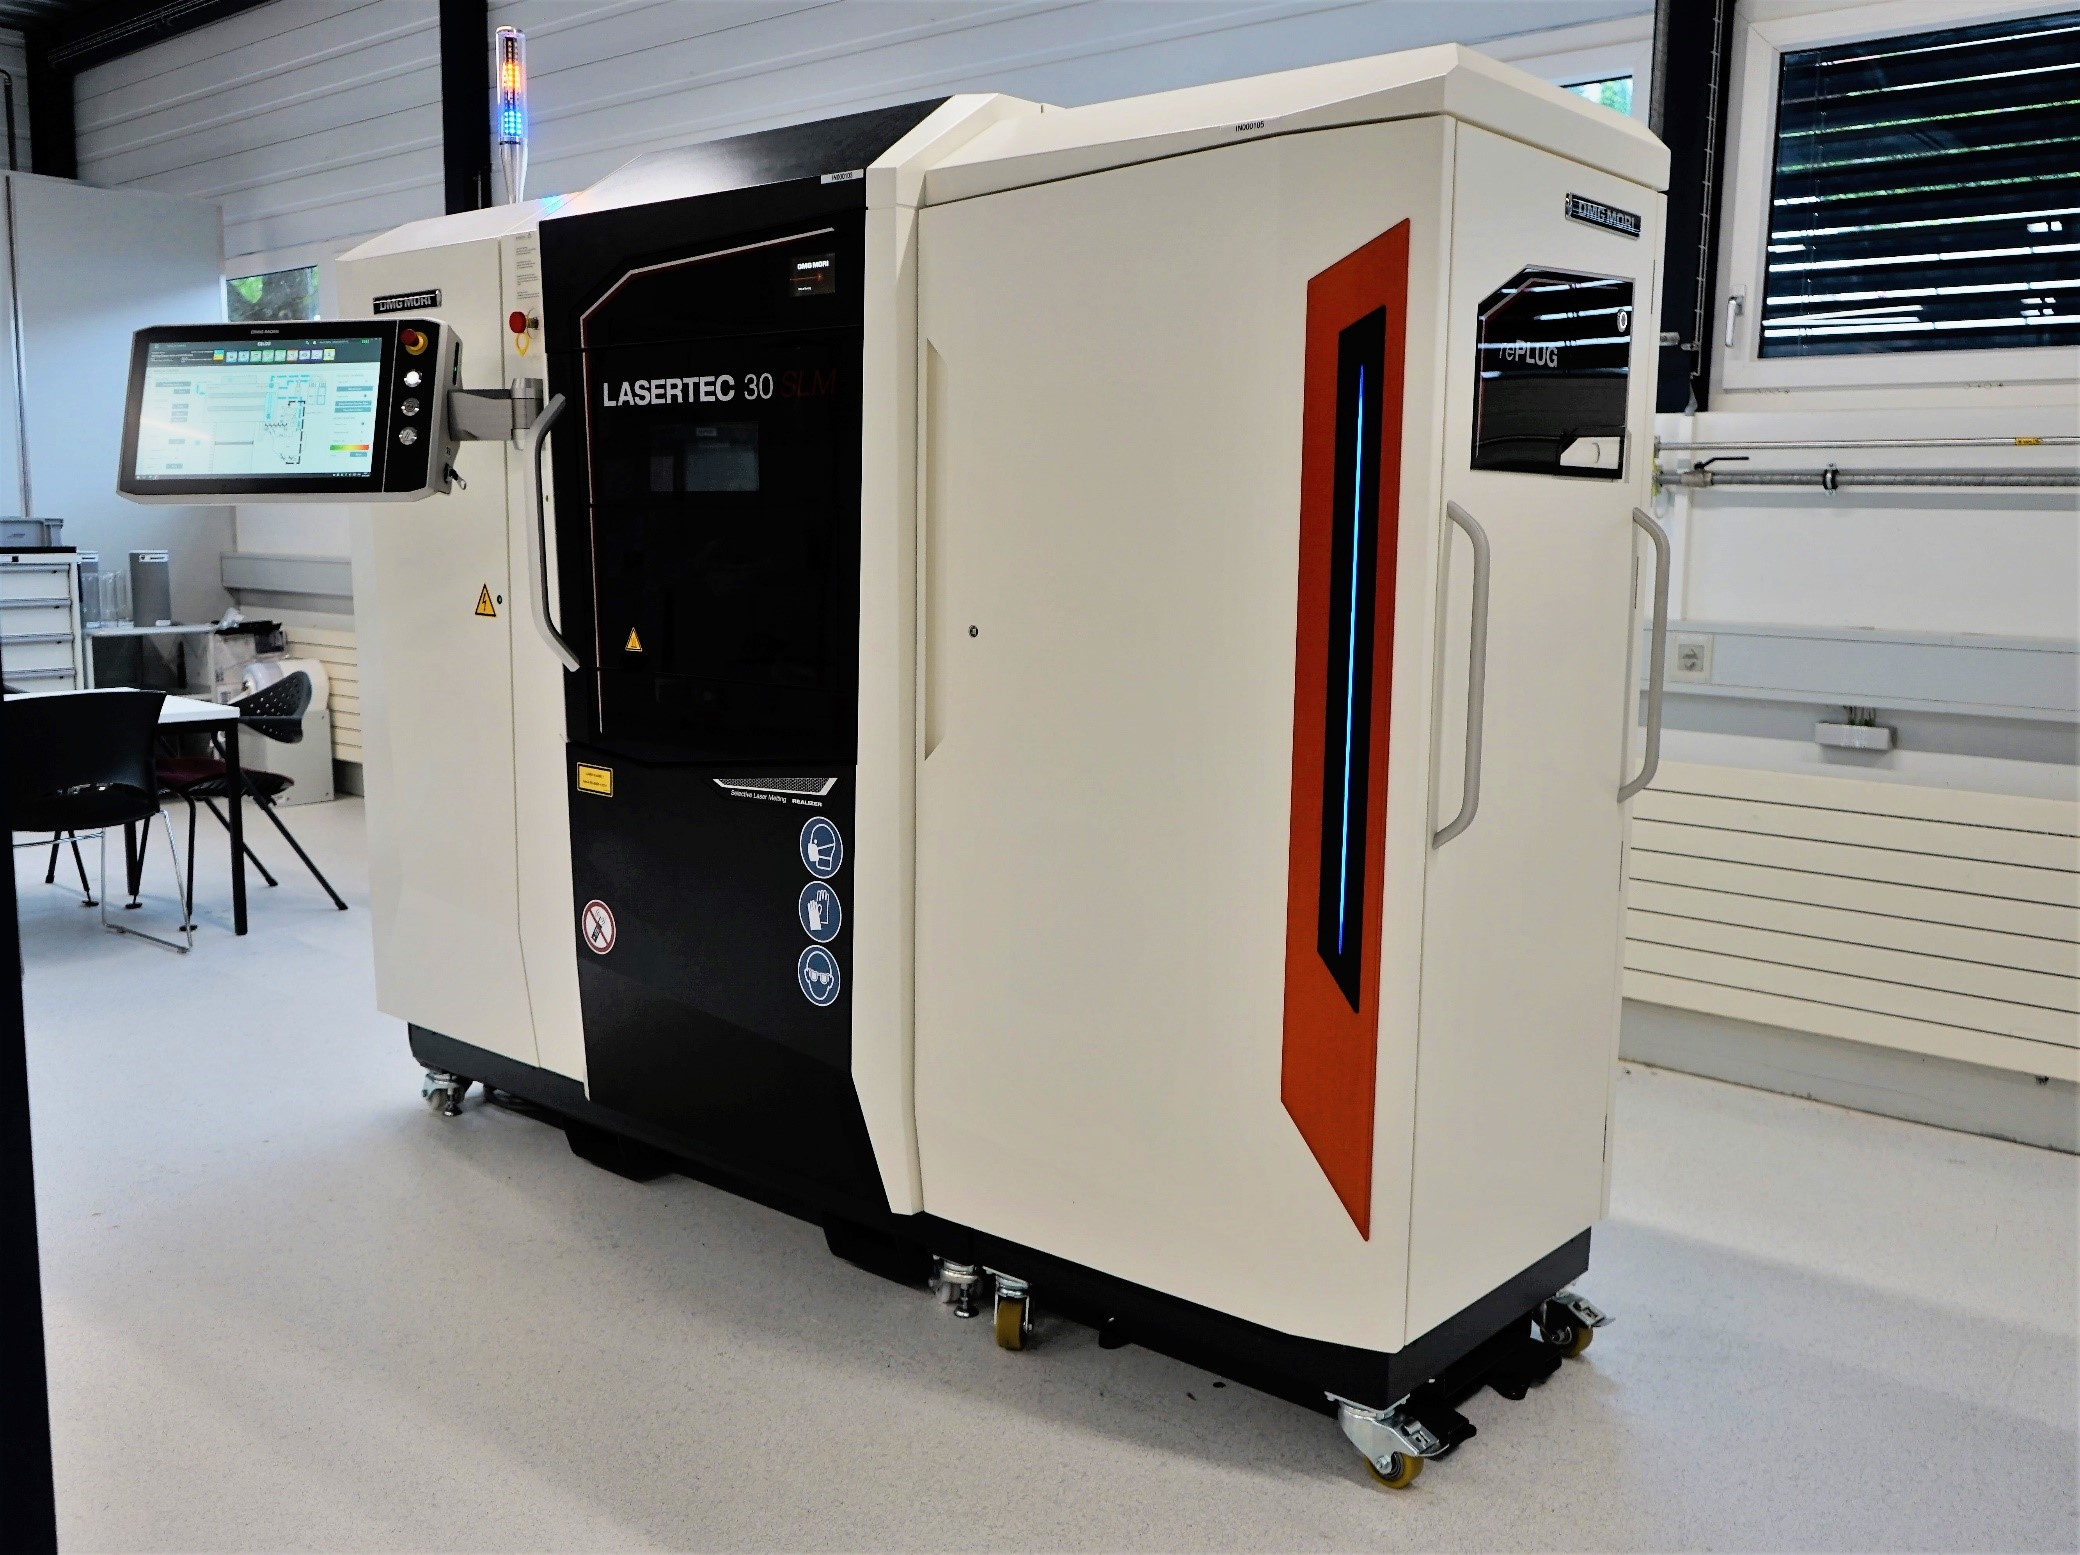 New machine, new possibilities – Welcome to the LASERTEC 30 SLM 2nd Gen by DMG MORI